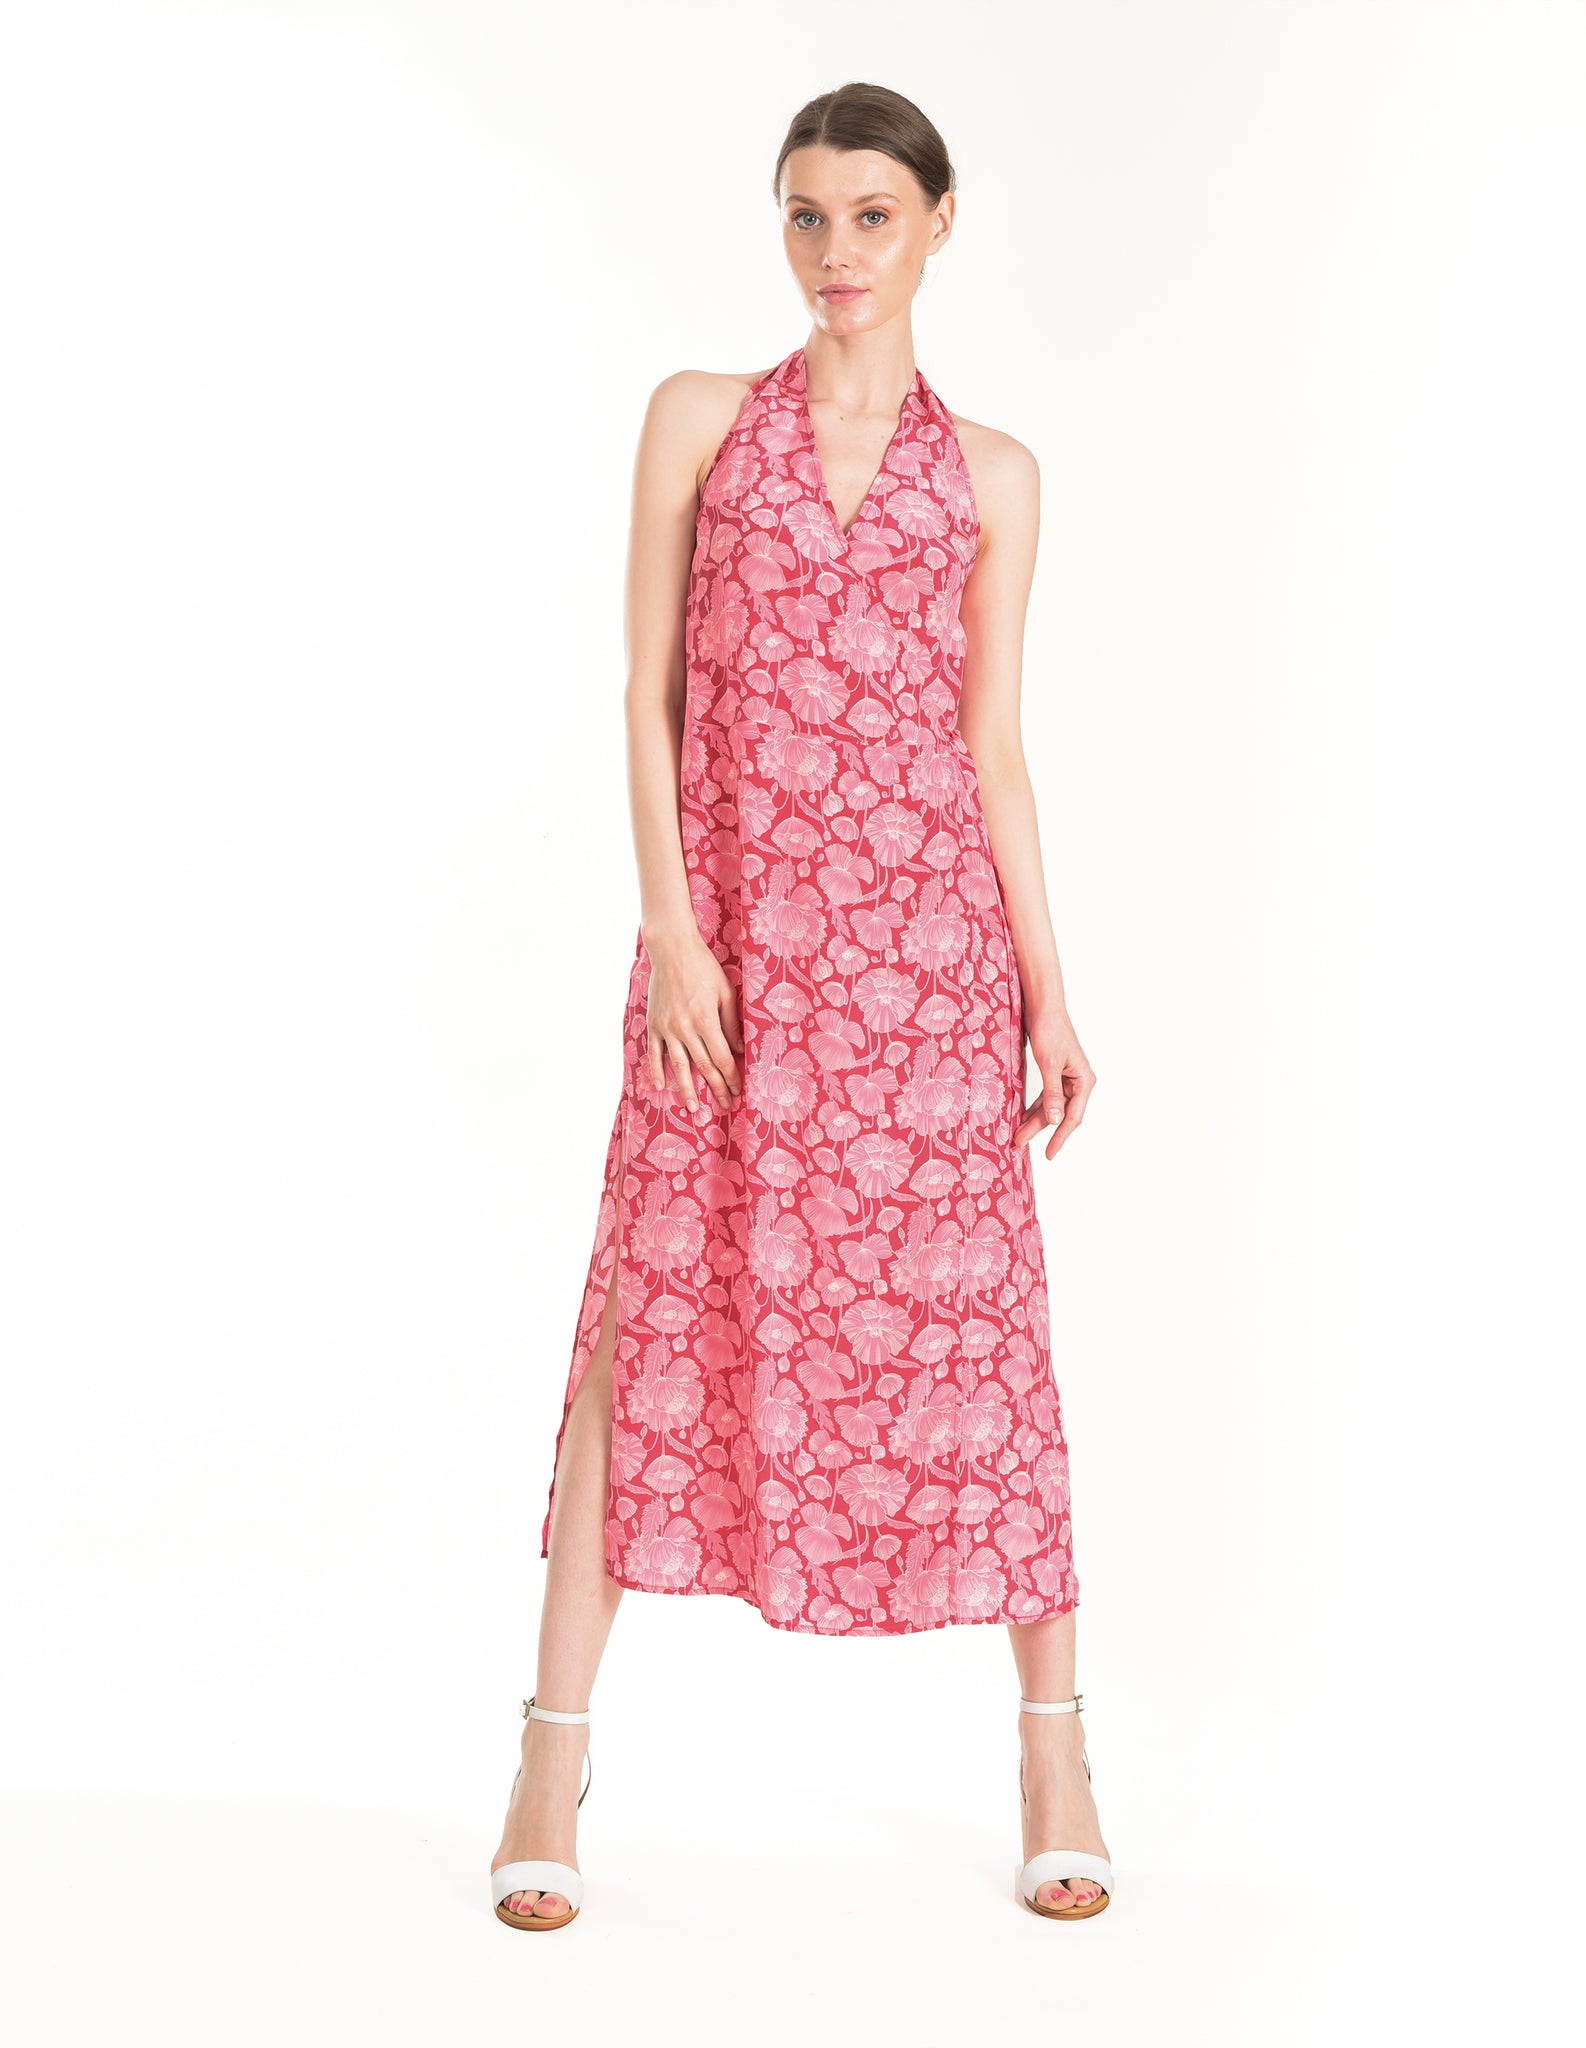 Deco Floral Wrap Dress - ISLE & ROW